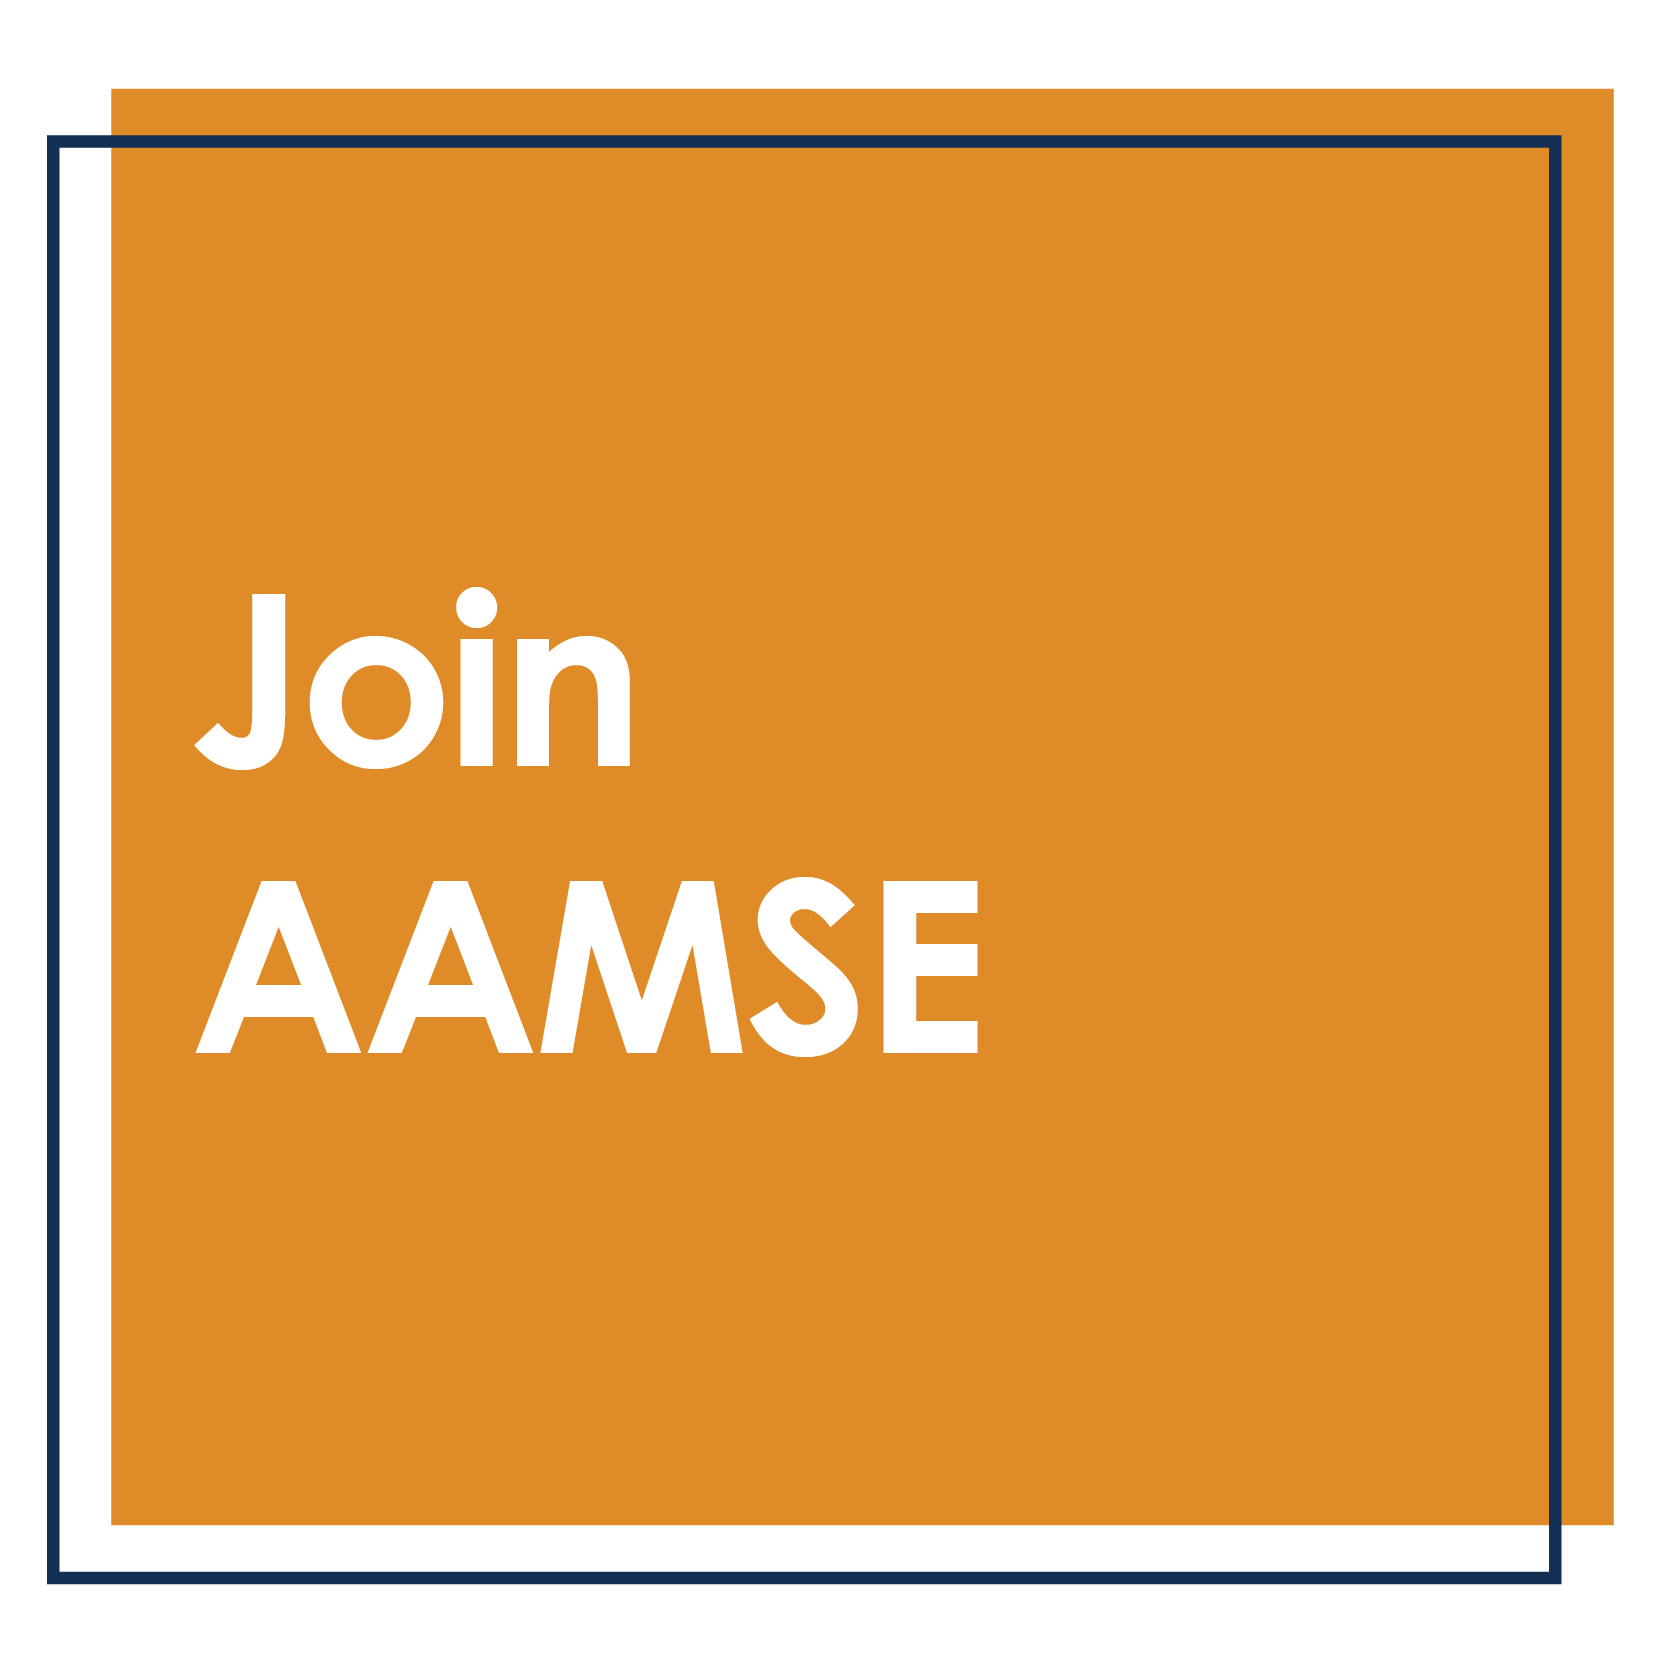 Join AAMSE